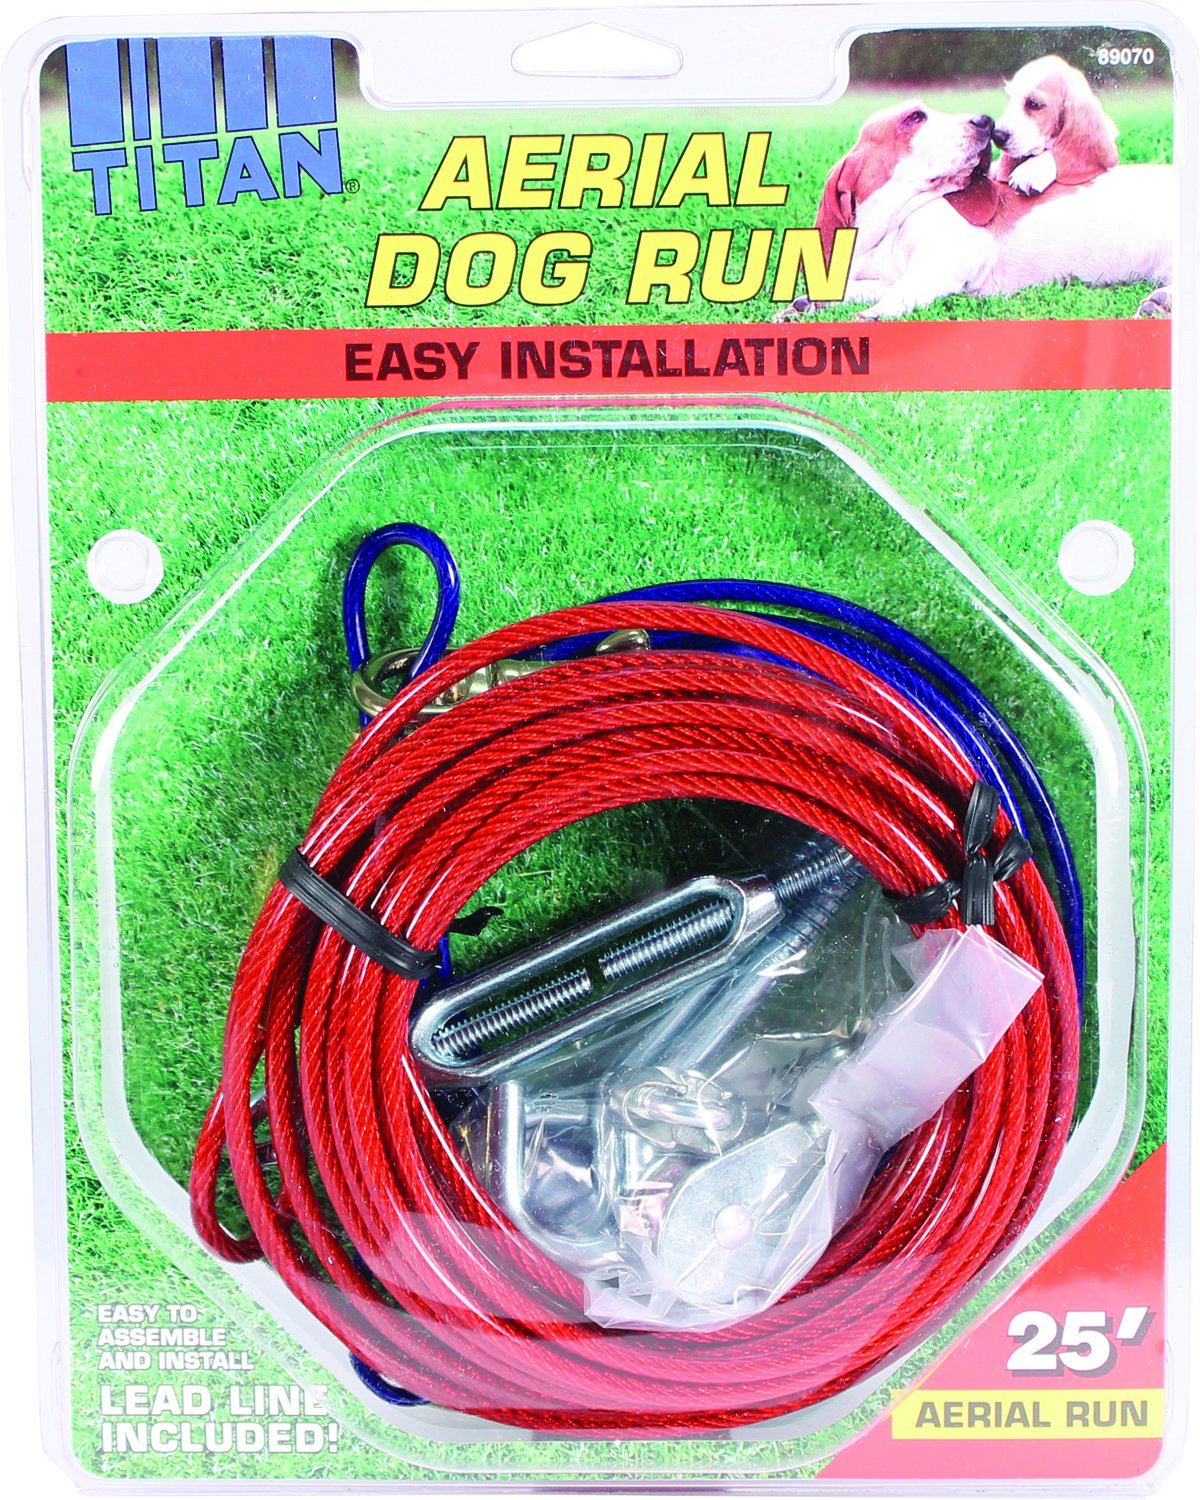 Coastal Pet Products DCP89070 Steel Titan Aerial Dog Run Cable Trolley System with Brass Plated Snaps 25-Feet Red